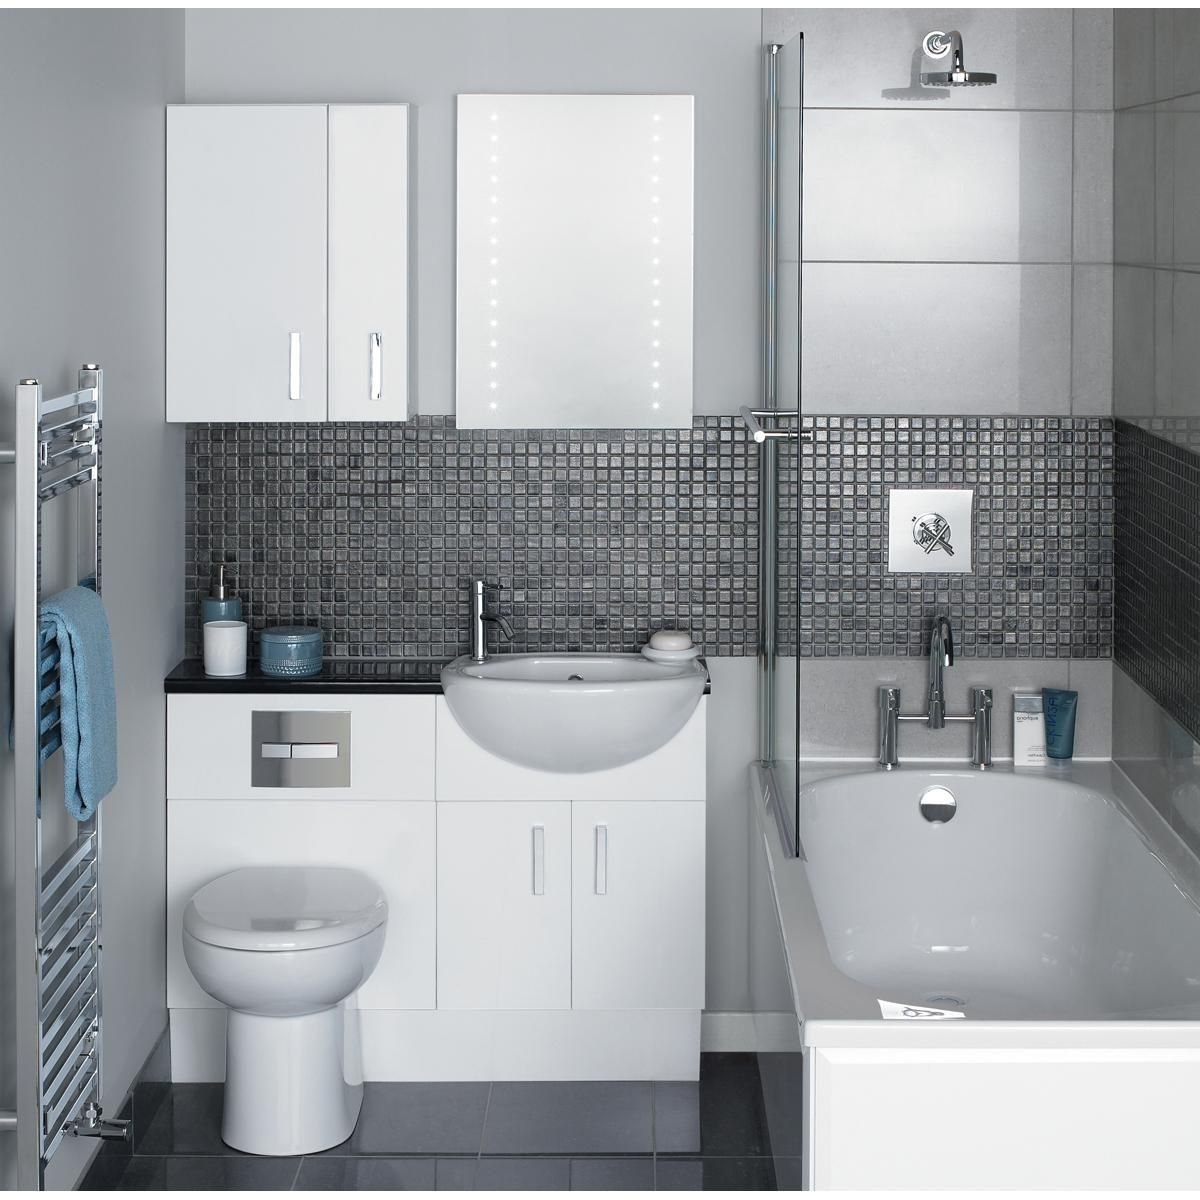 flooring ideas for small bathrooms%0A Grey And Black Bathroom Designs  Awesome Grey and Black Bathroom Designs   amazing of cool modern grey bathroom tile ideas gray and